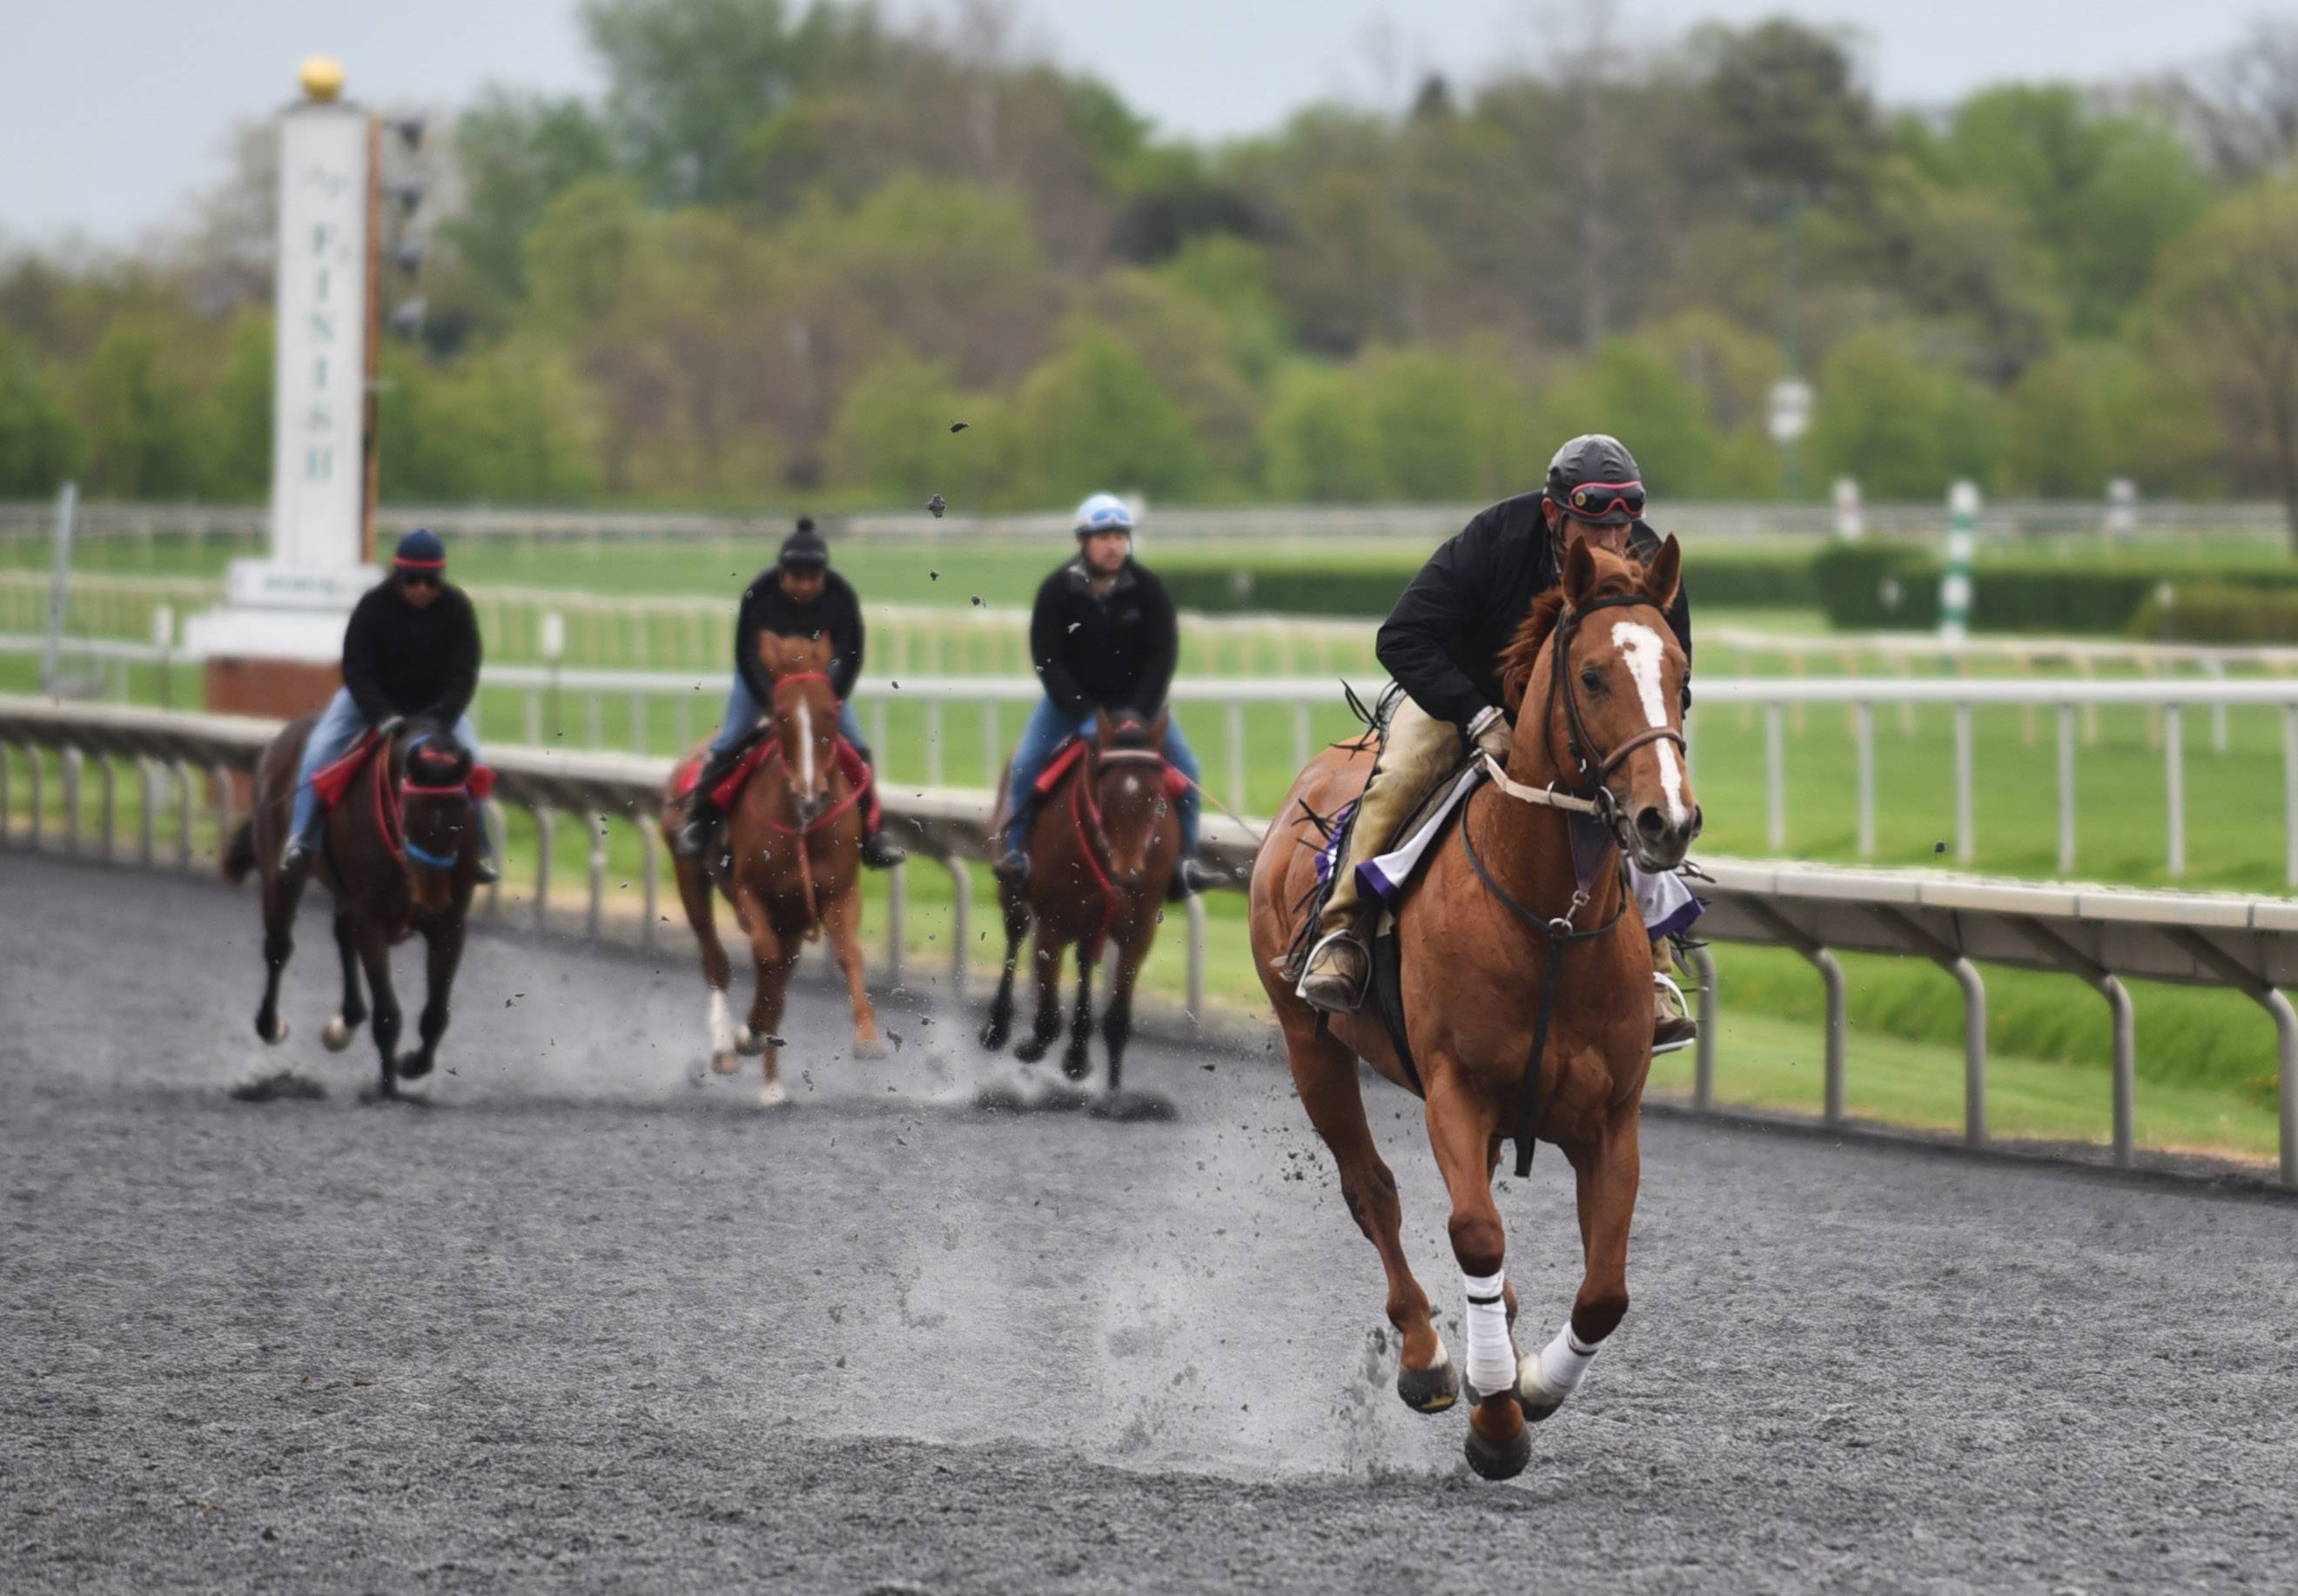 Horses work out at Arlington on Thursday morning in preparation for opening day Friday. Arlington has 71 live racing dates this season.